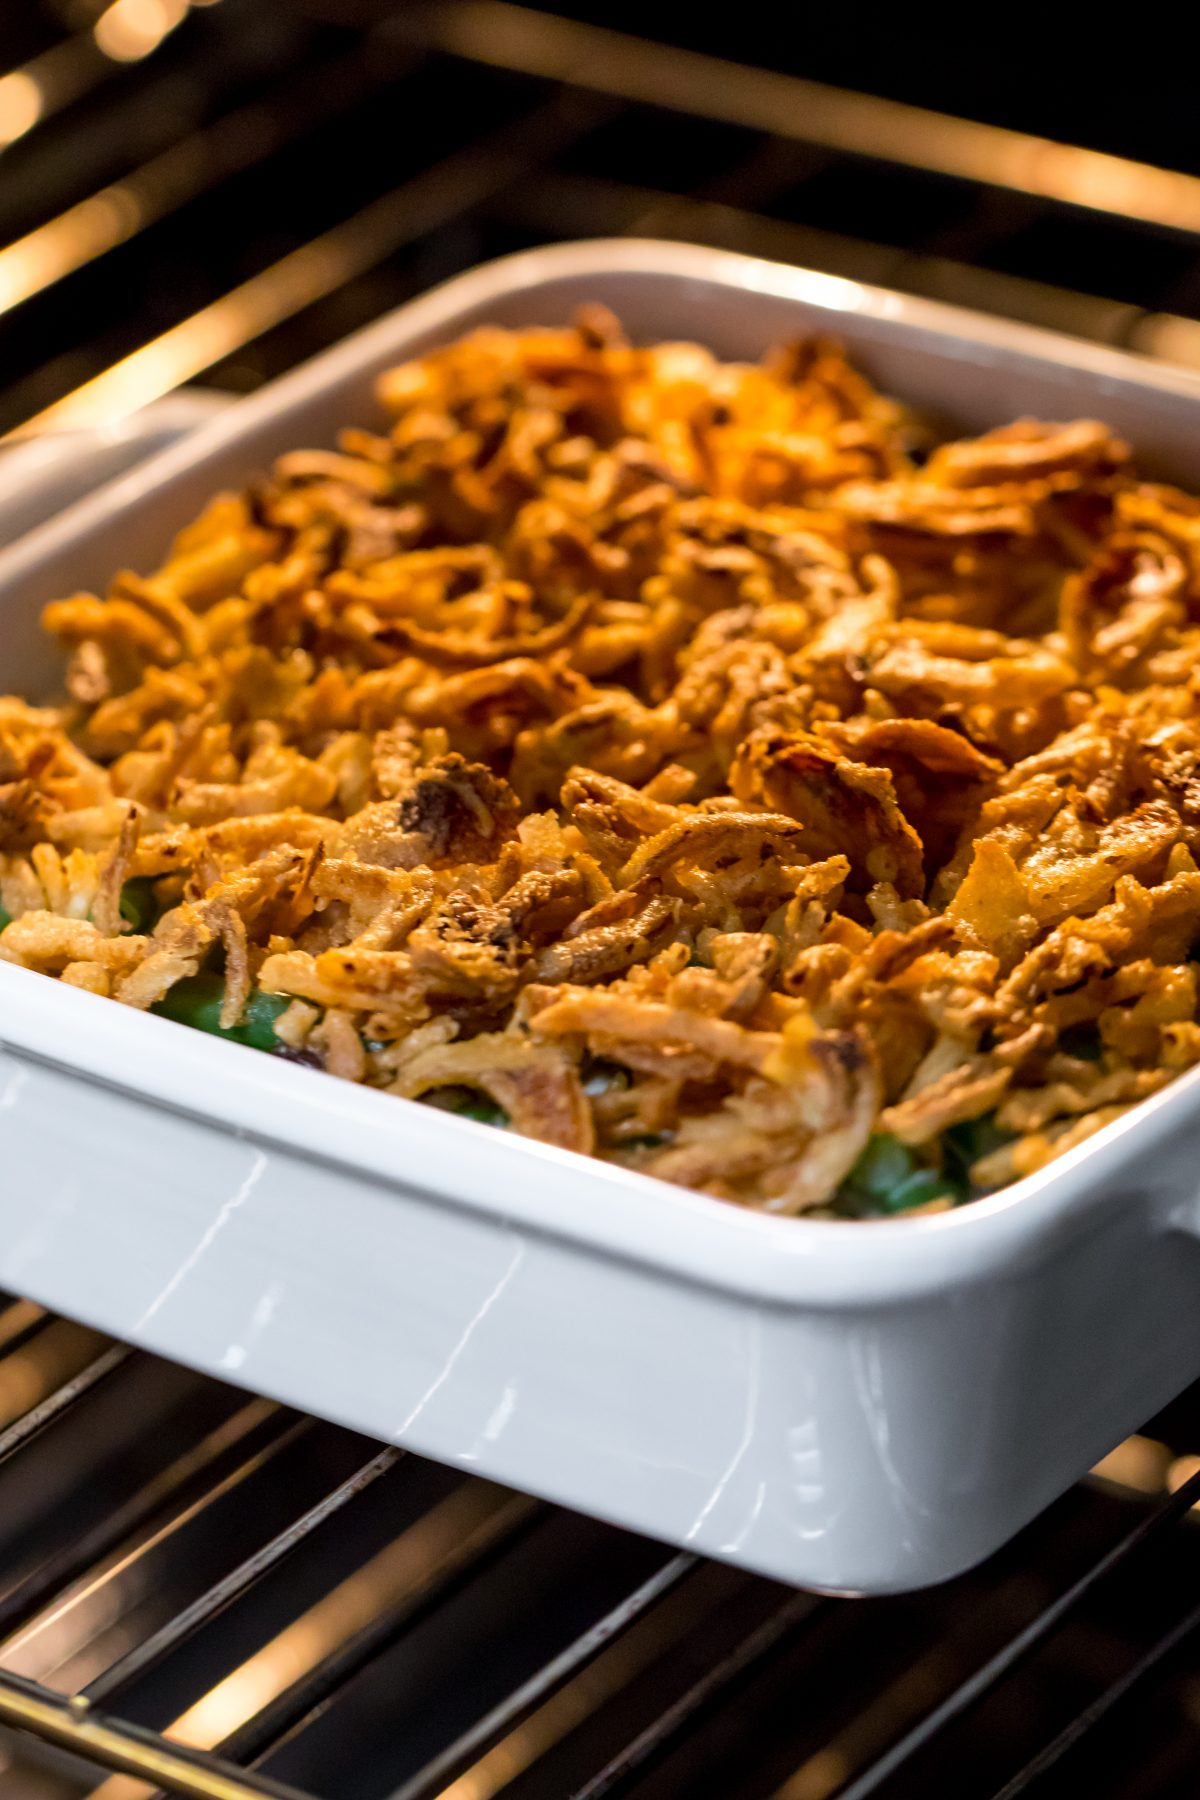 Creamiest green bean casserole - Bake the green bean casserole